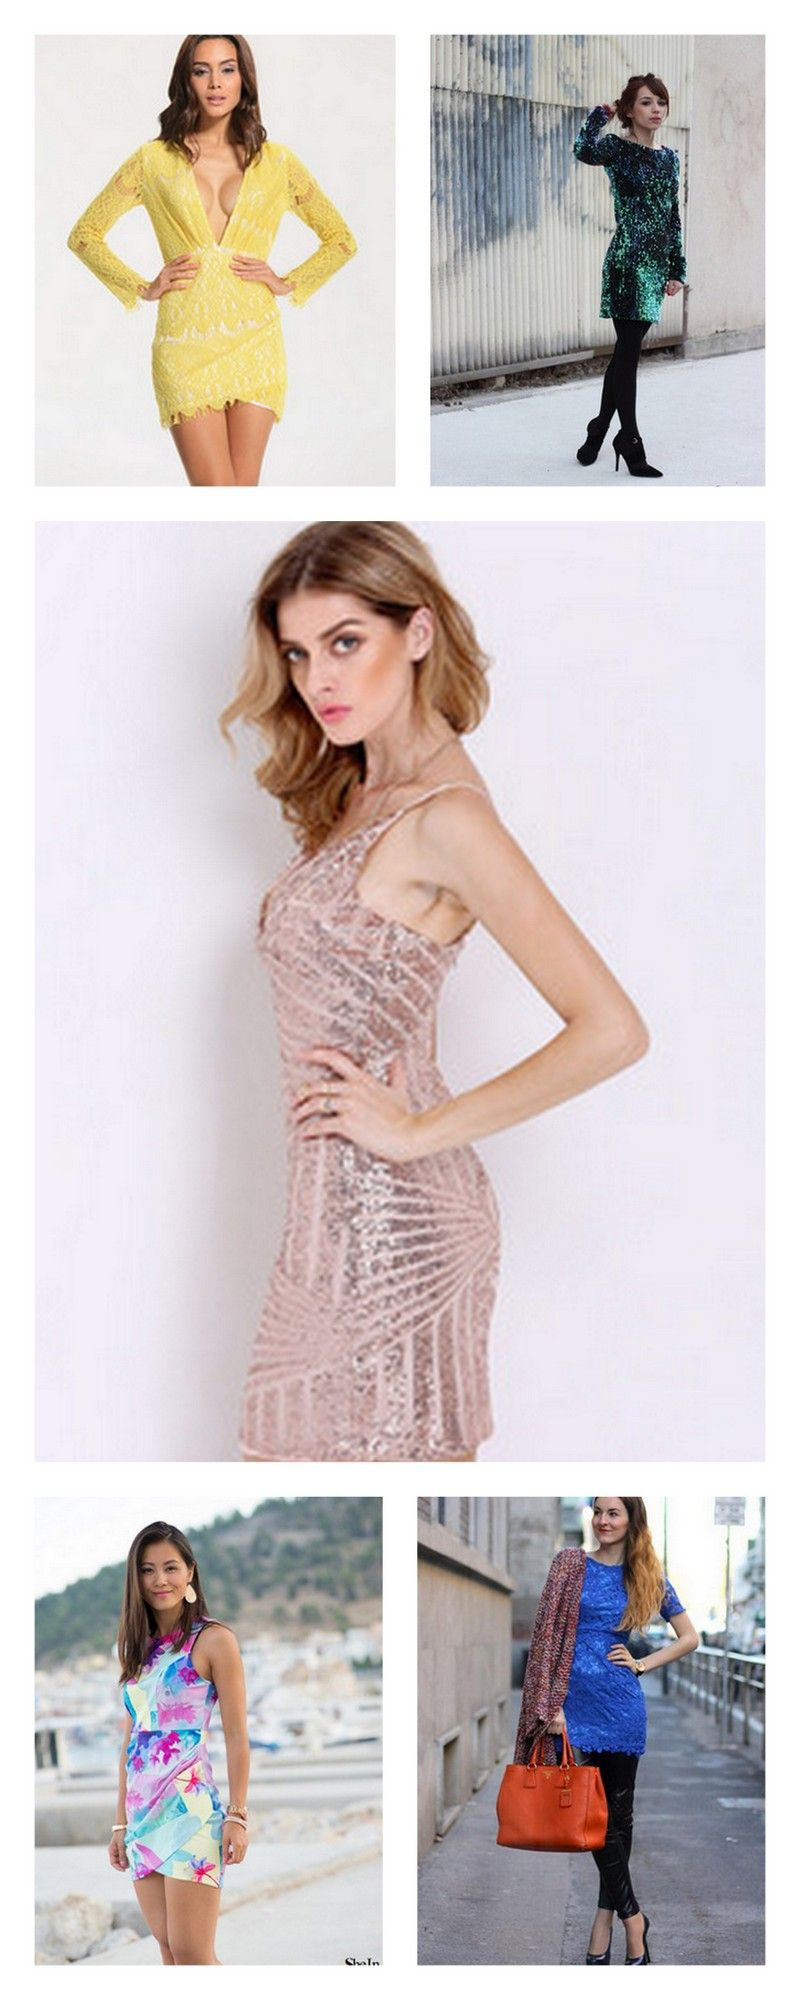 Elegant Bodycon Party dresses for women,high quality & worth the price,35% Off for 1st Sign Up